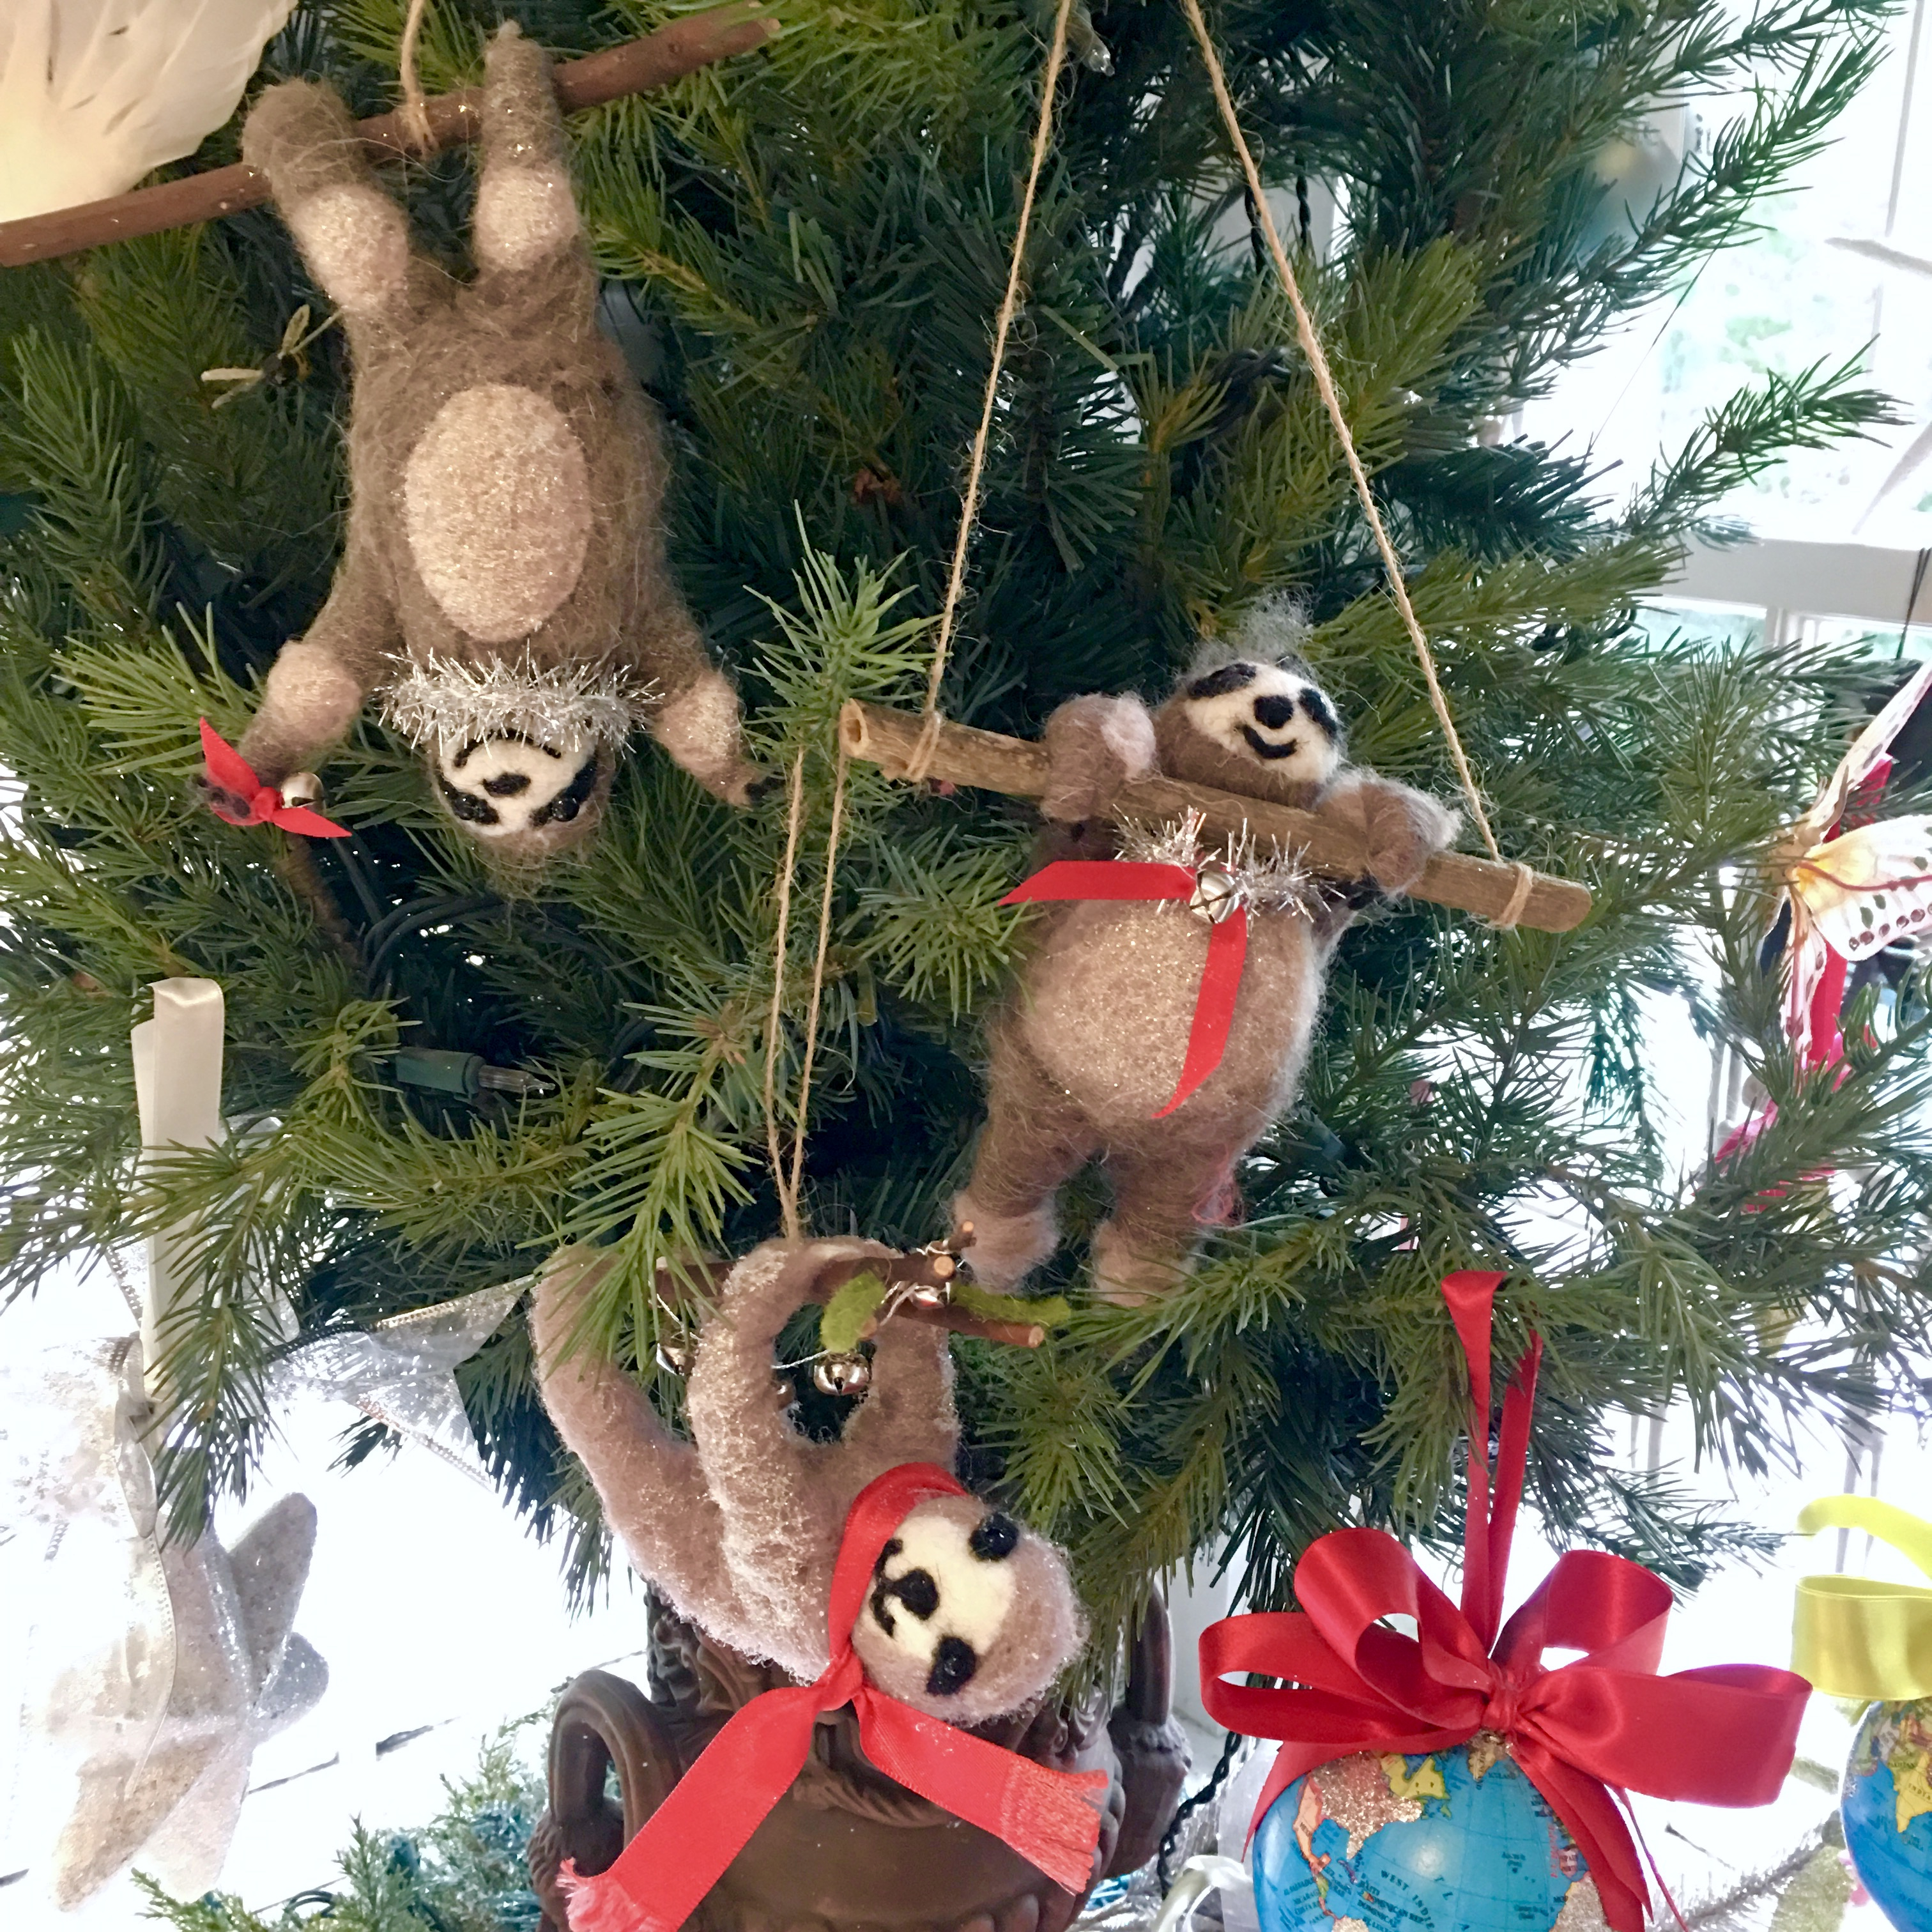 Holiday sloths have arrived!